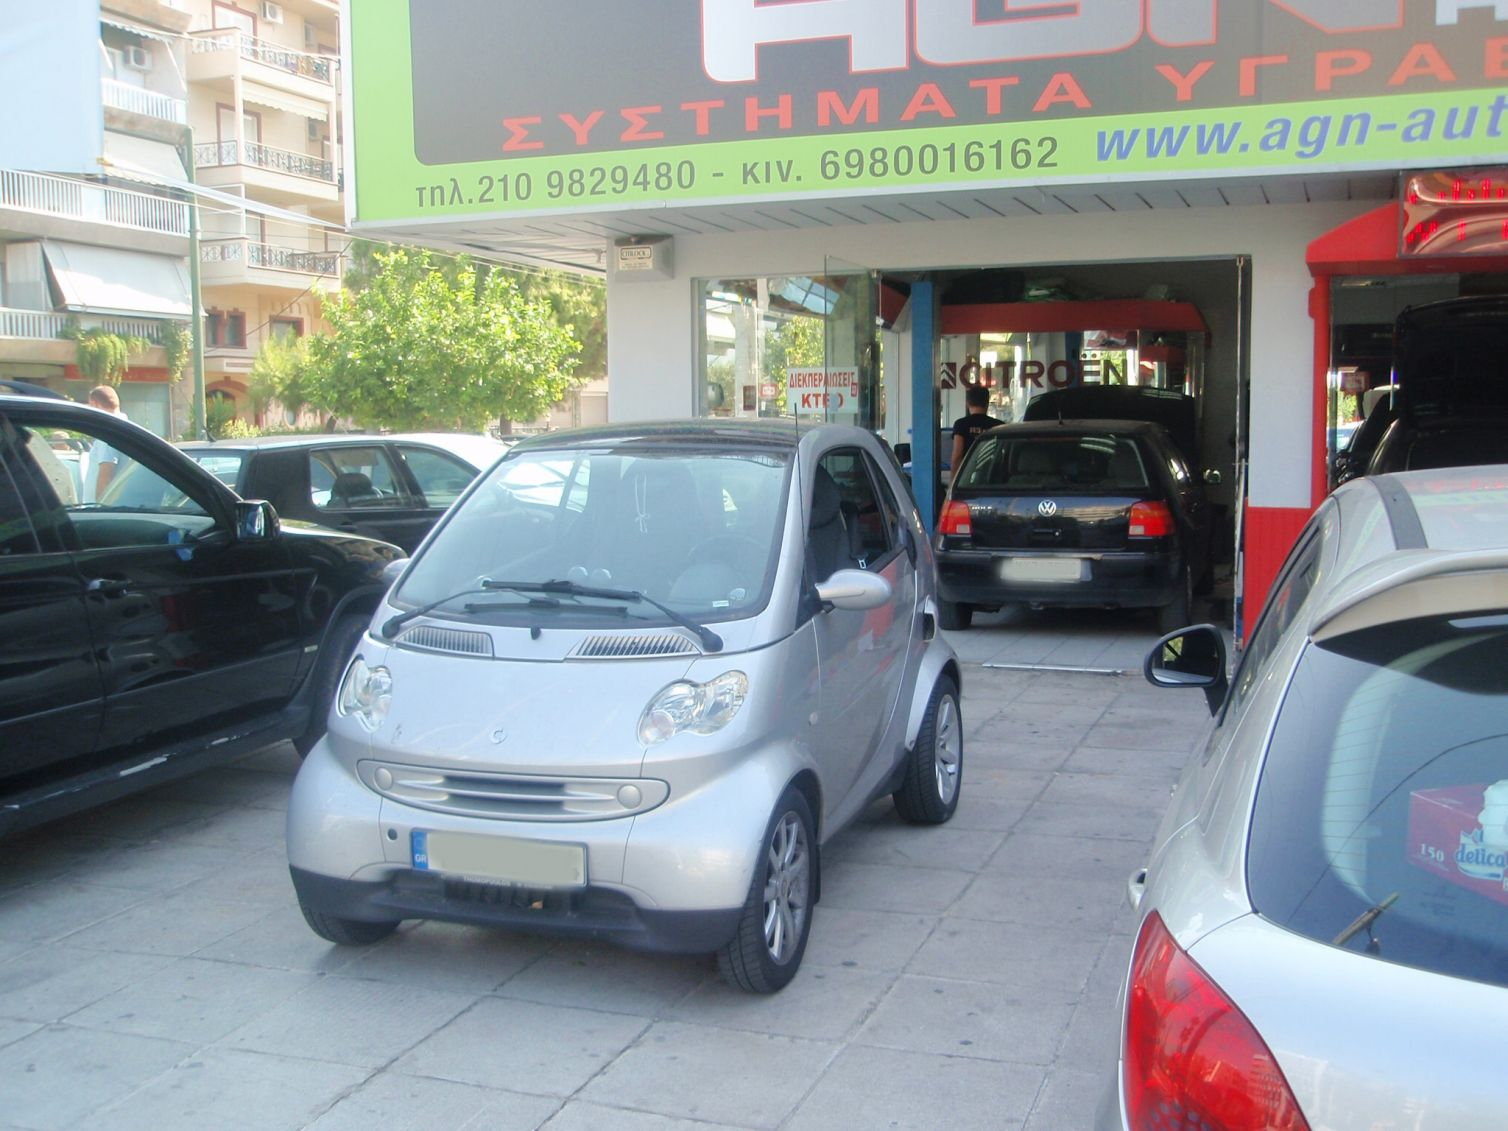 SMART FORTWO COUPE 700cc '08 ME BRC 40LT